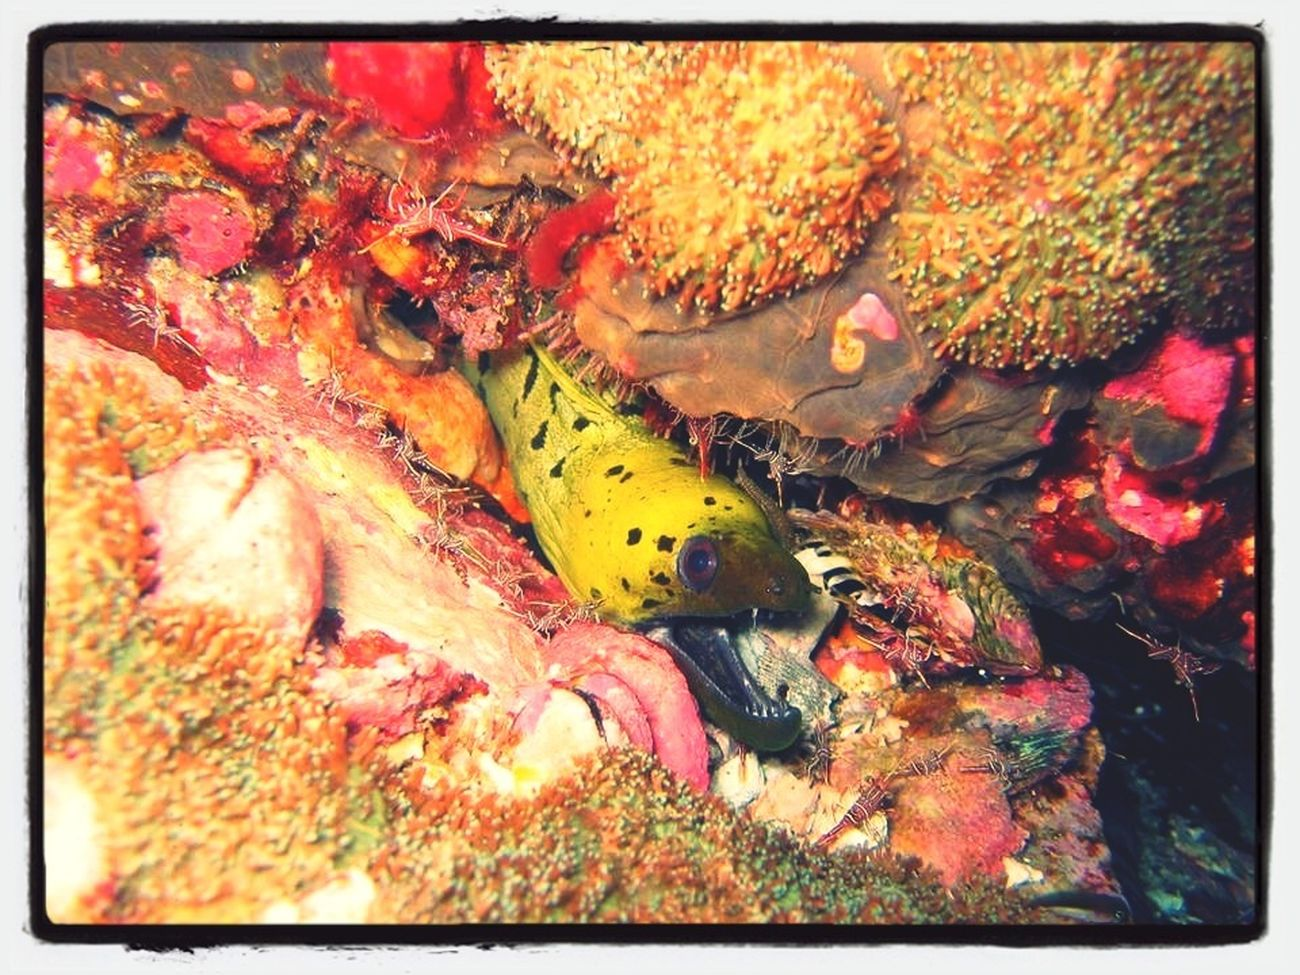 a moray eel Underwaterphotography Eel Underwater